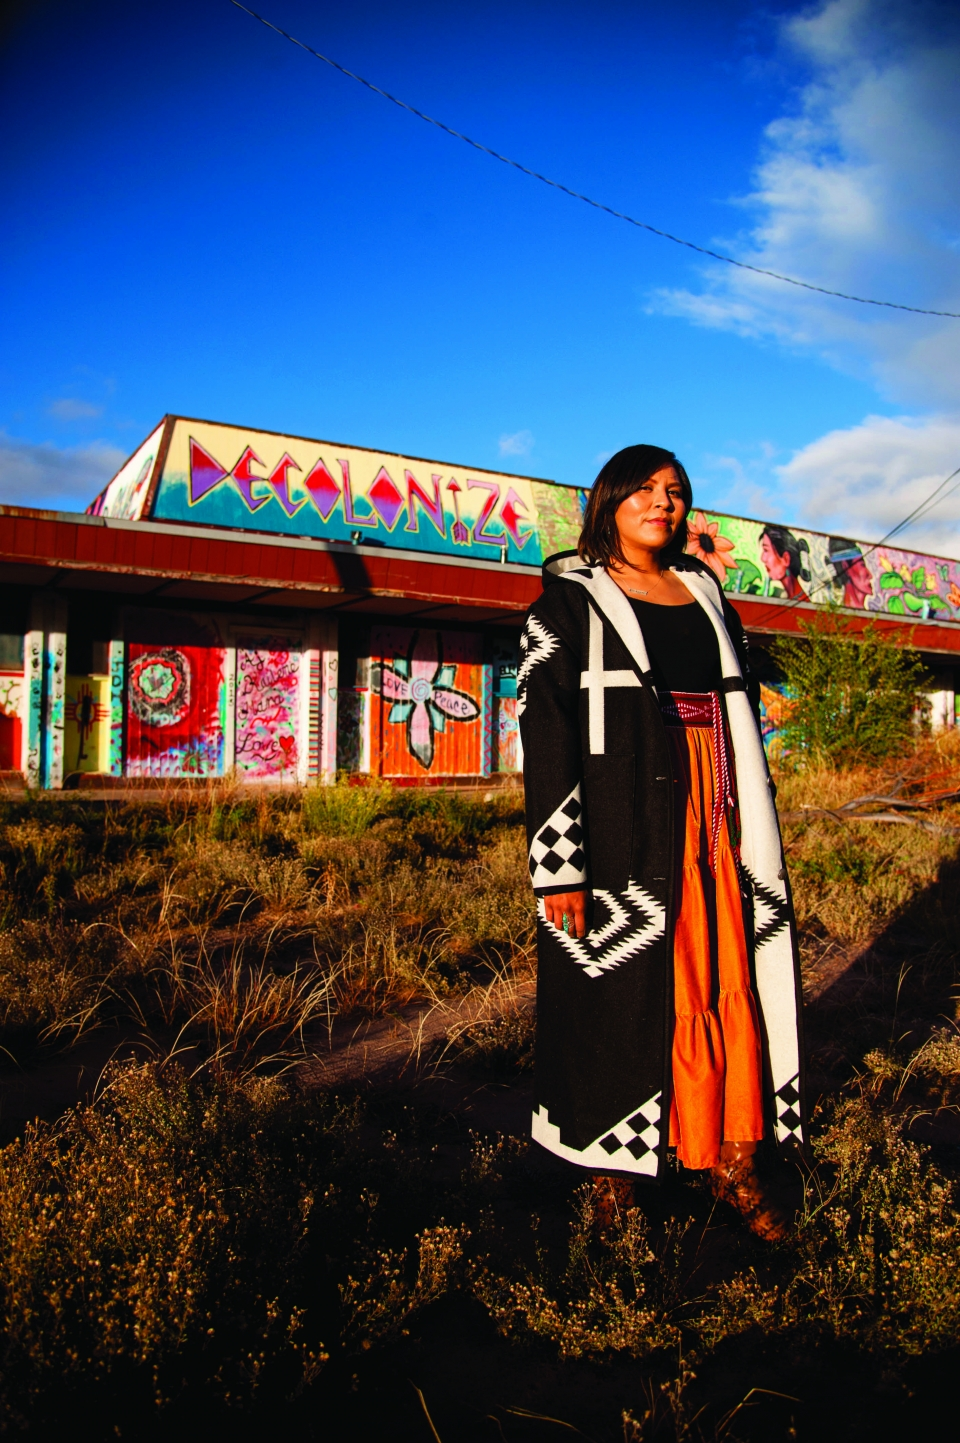 """A young adult female wearing a long traditional Navajo dress stands in a field; a bright, colorful mural painted on the side of a building is behind her, with the word """"Decolonize"""" painted at the top."""